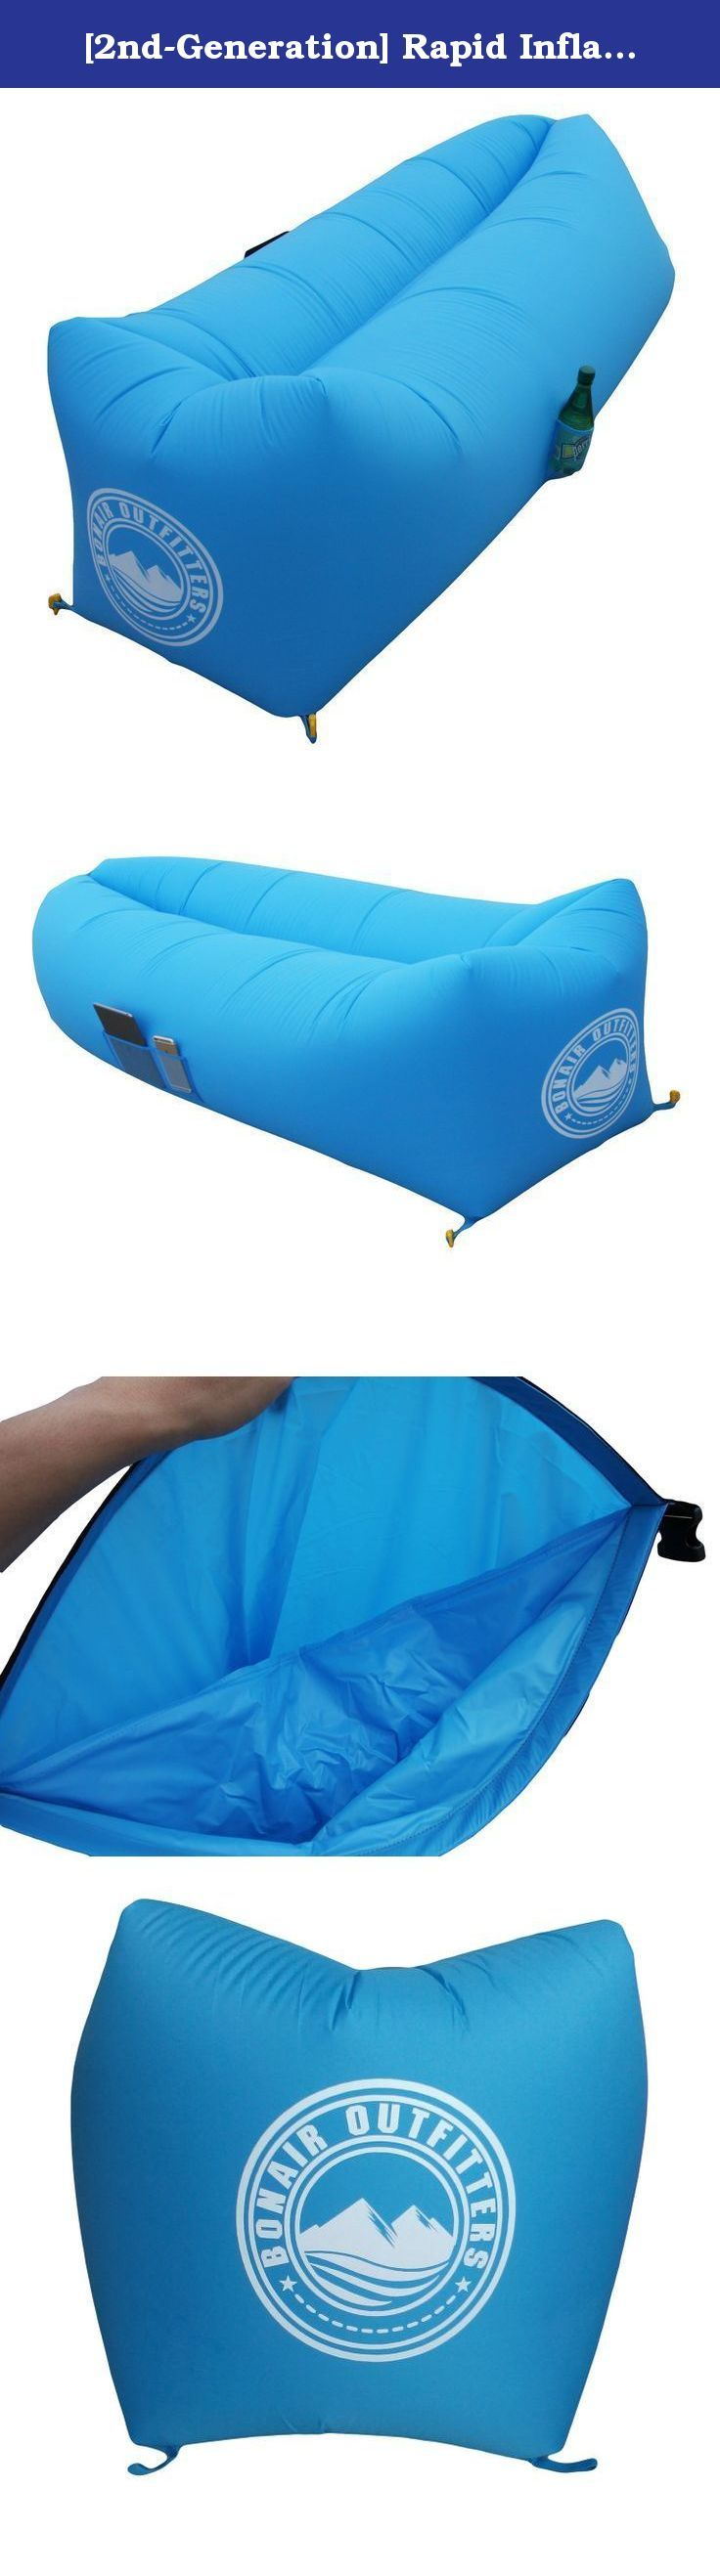 [2nd-Generation] Rapid Inflation Air Lounger With TPU-Coated Air Bladder. Lightweight Parachute Ripstop Fabric. Fold-Away Chillout Lounger, Air Hammock For Beach, Camping, Pool Party And Indoors. LOUNGE IN COMFORT AND STYLE. Pack more joy with a lighter load when you replace beach chair with Rapid Inflation WindCatcher Air Lounger. At ⅕ the weight of beach chair, Rapid Inflation WindCatcher Air Lounger is your perfect relaxation pal for the Beach, Outdoor Concert, BBQ in the Park...